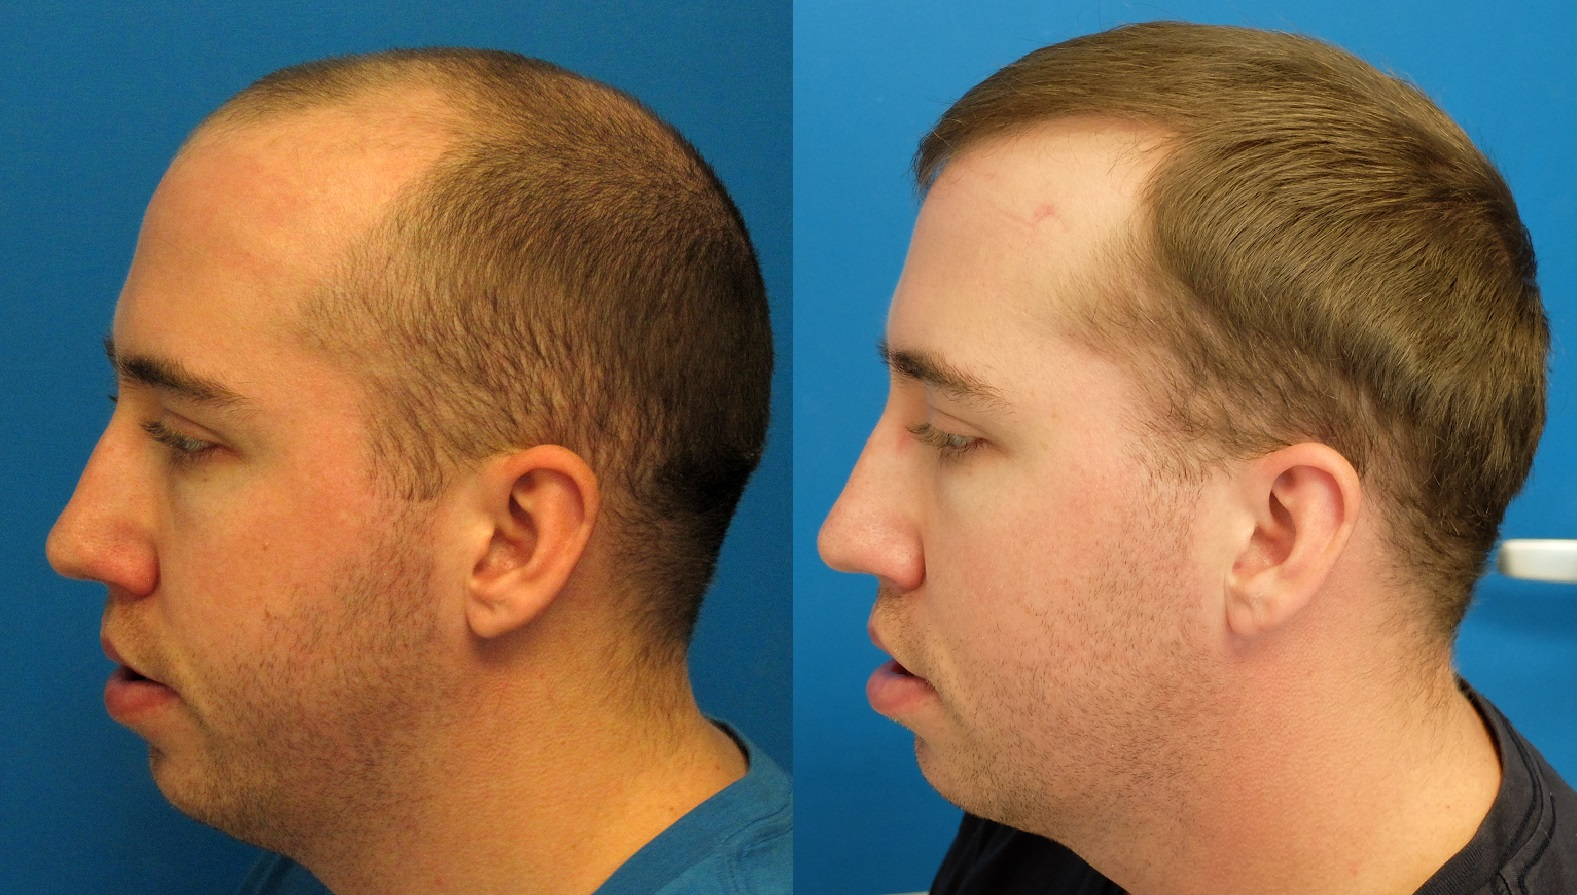 Hair Transplant in Chandigarh 1 - What are the Advantages Of Hair Transplantation Surgery?